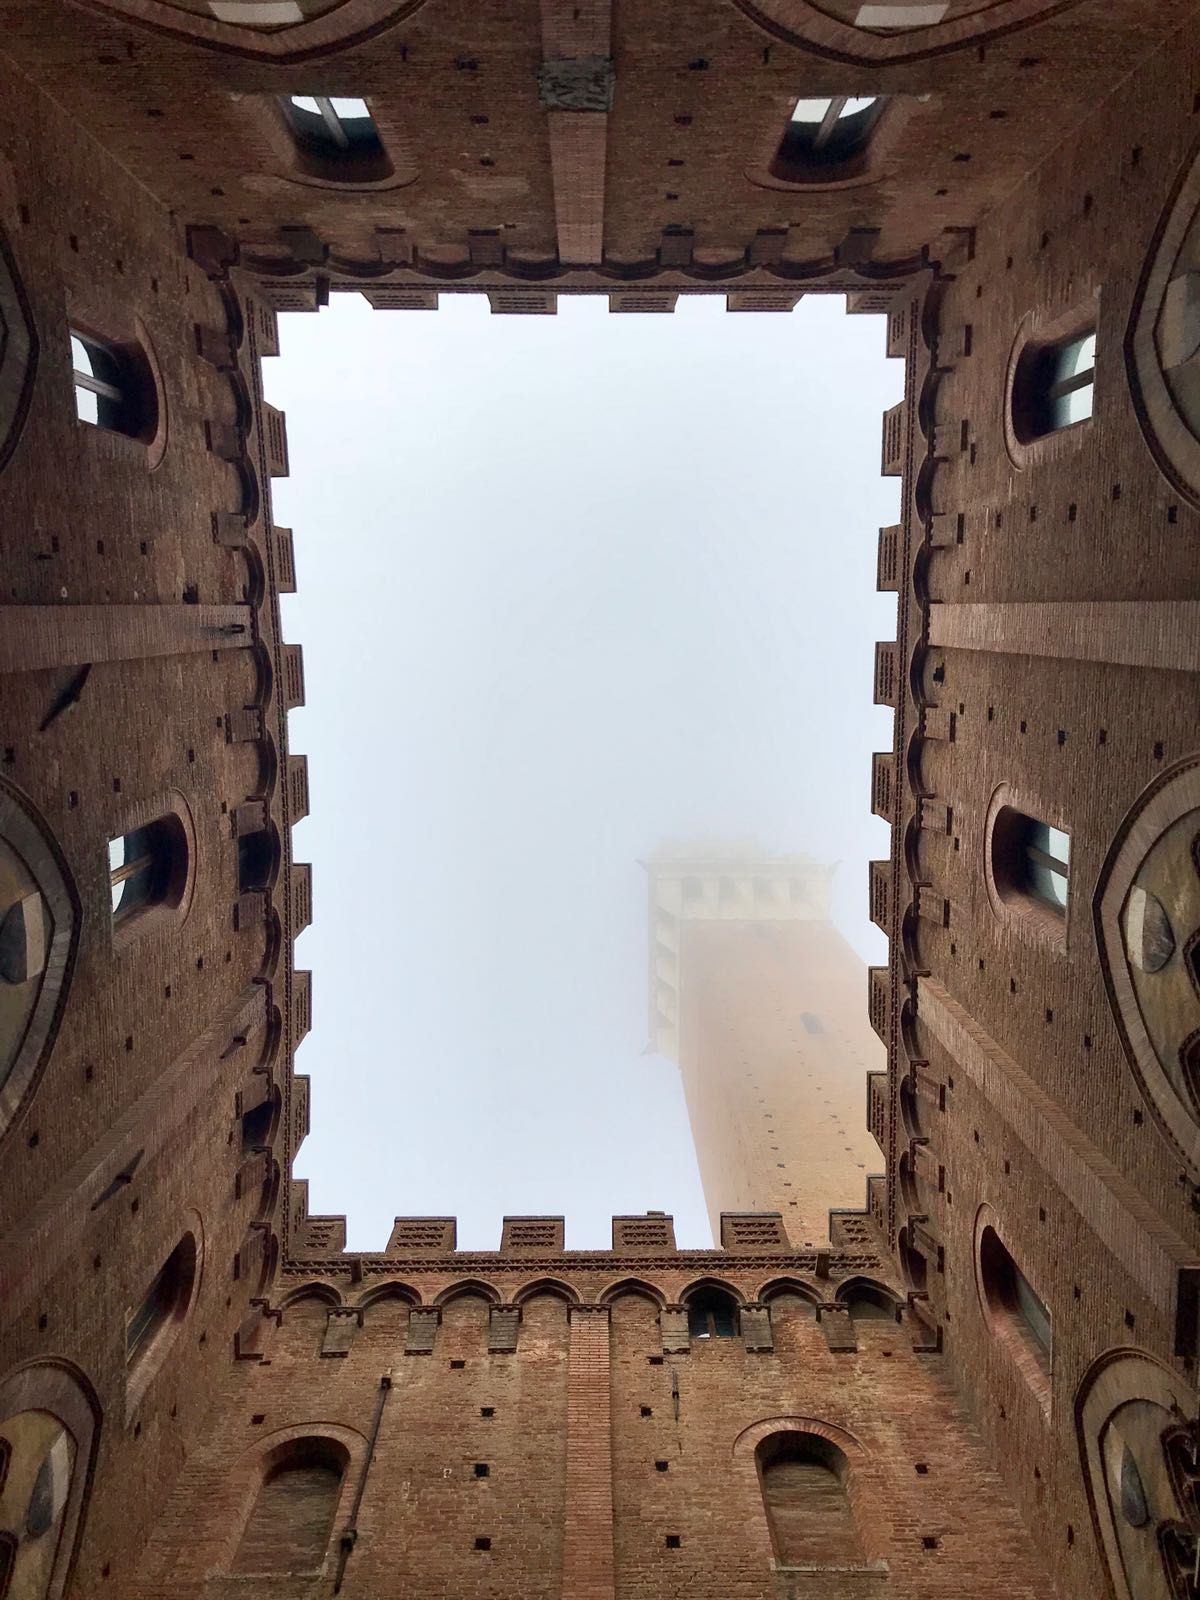 View of the Palazzo del Pubblico tower disappearing into the mist from its internal courtyard